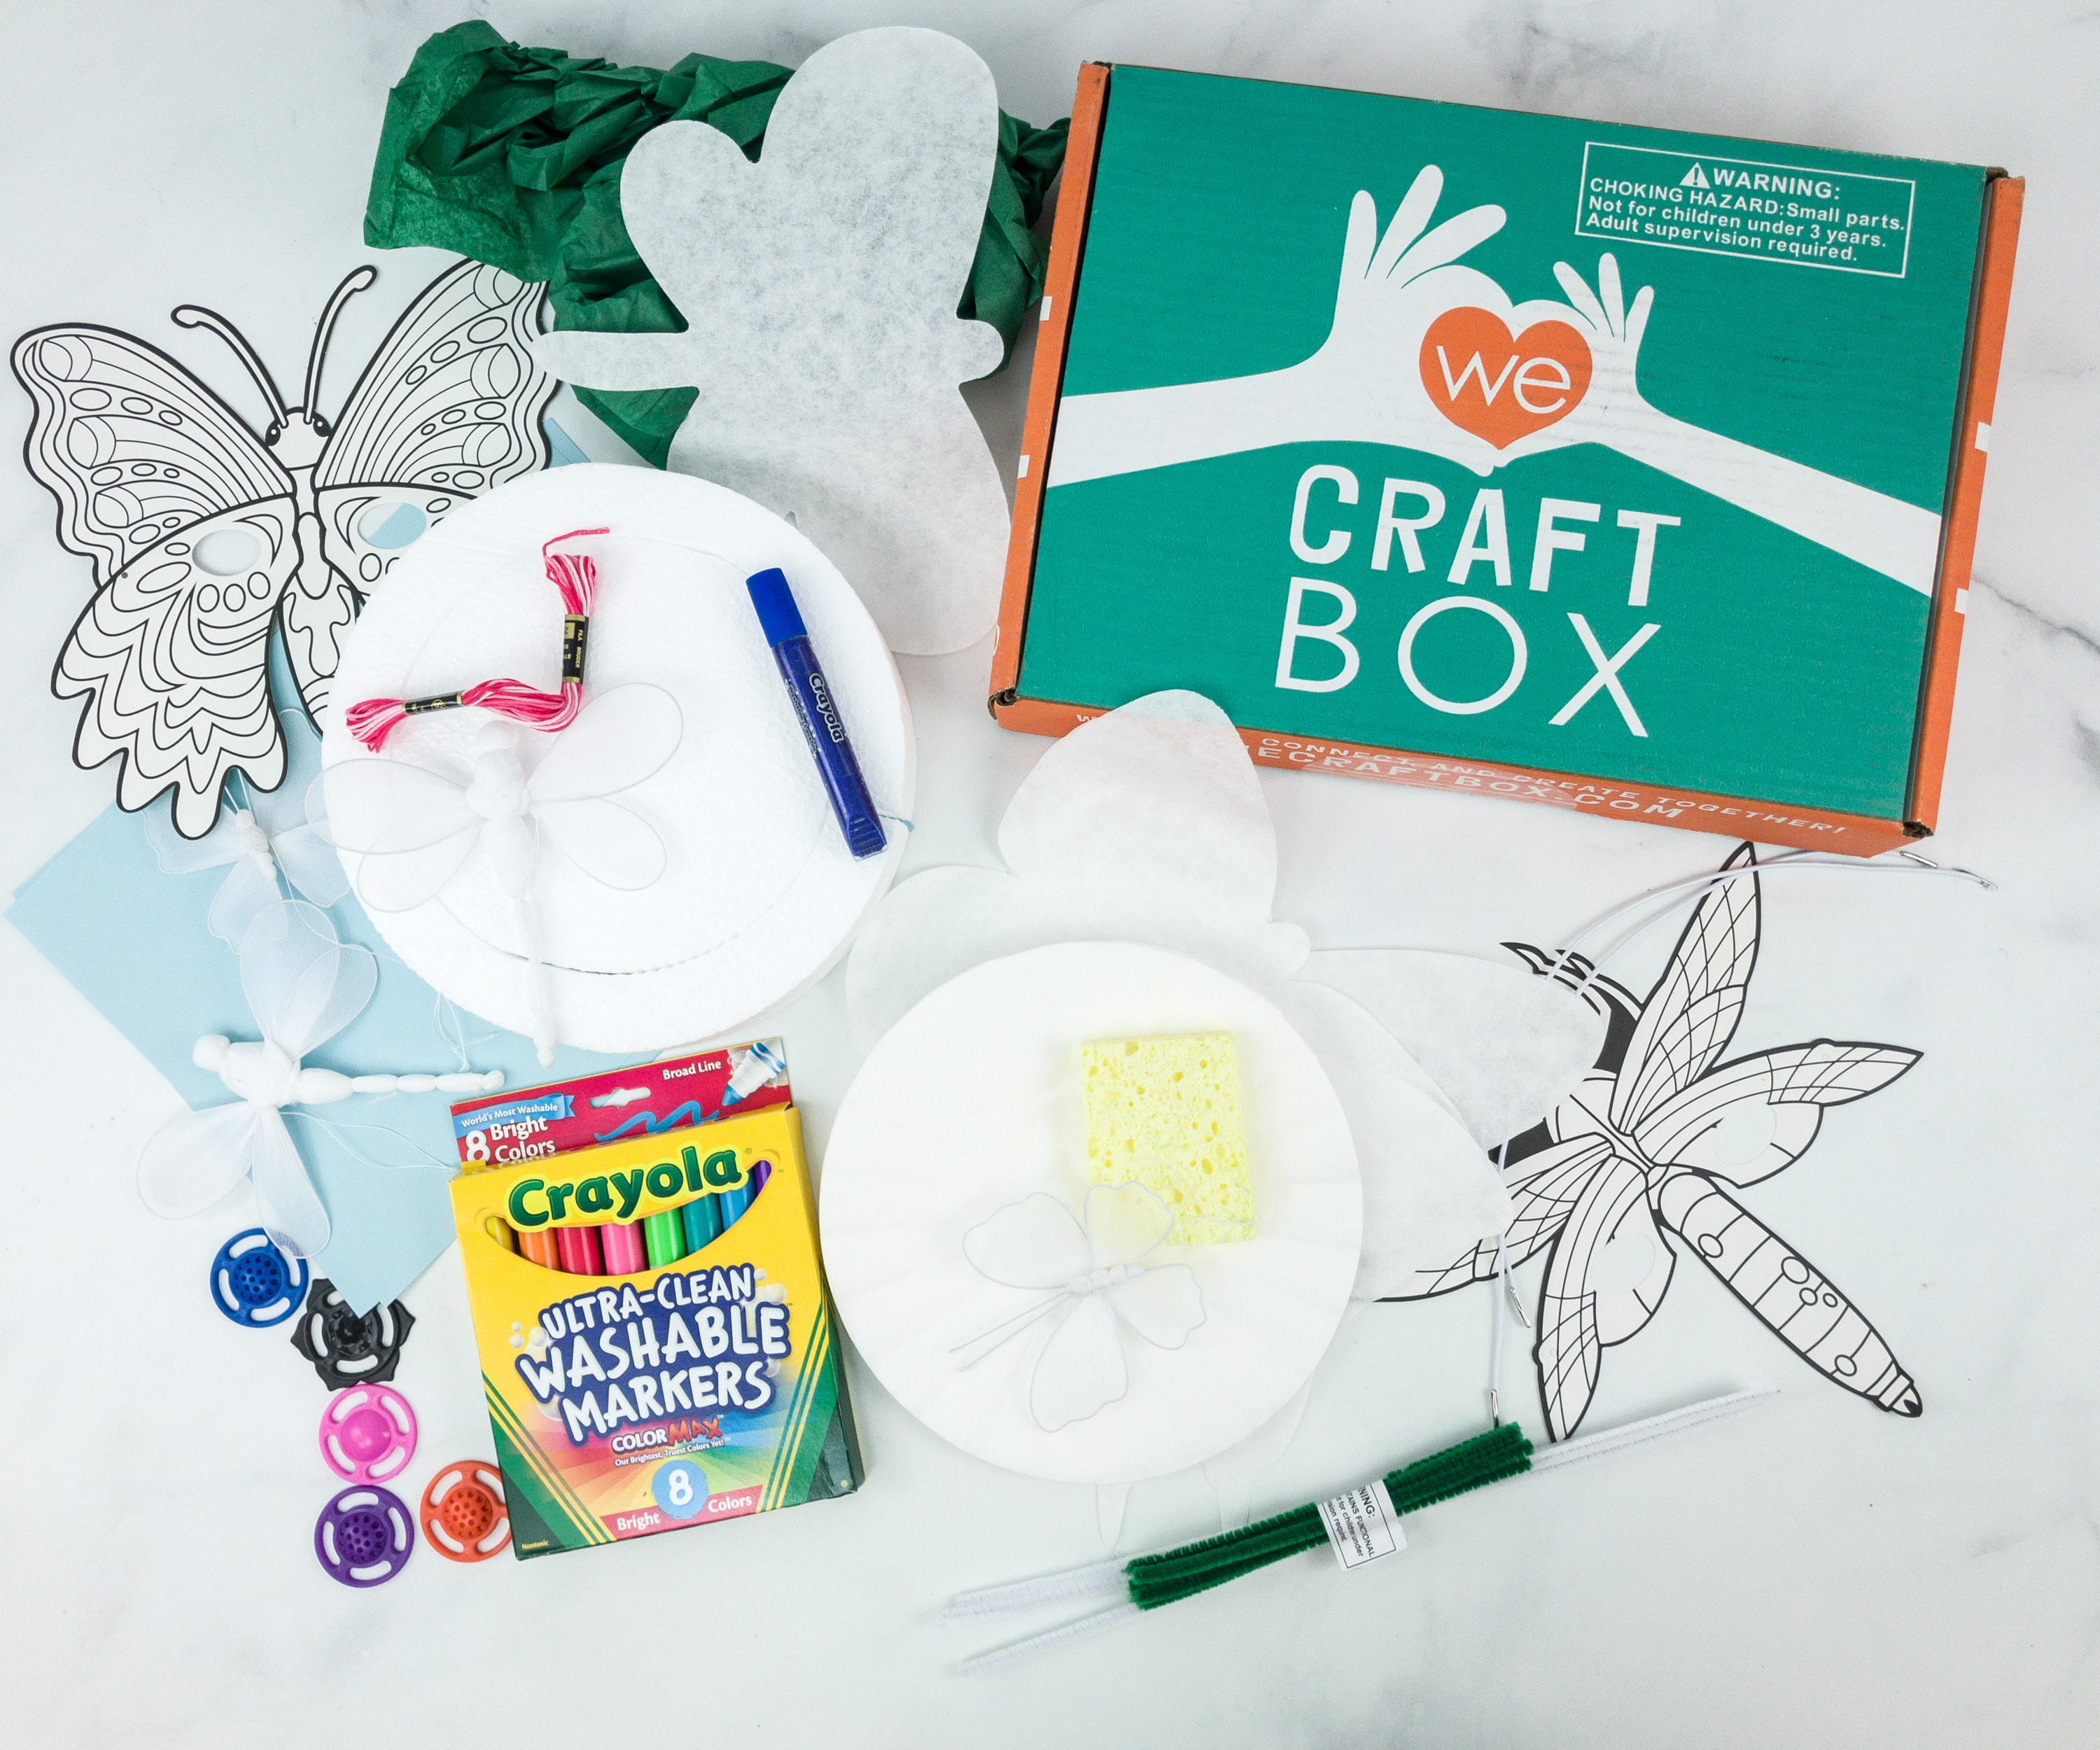 We Craft Box March 2019 Subscription Box Review + Coupons!